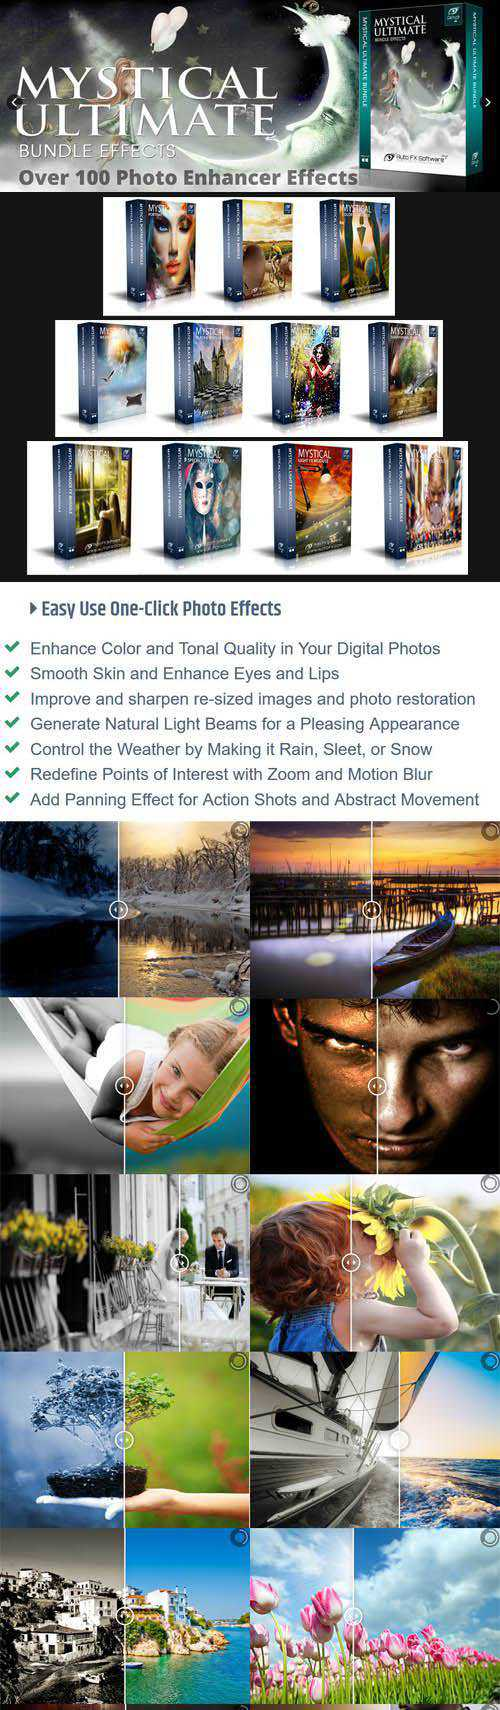 Mystical Suite StandAlone & Plugin 2.0 for Photoshop (x86/x64)